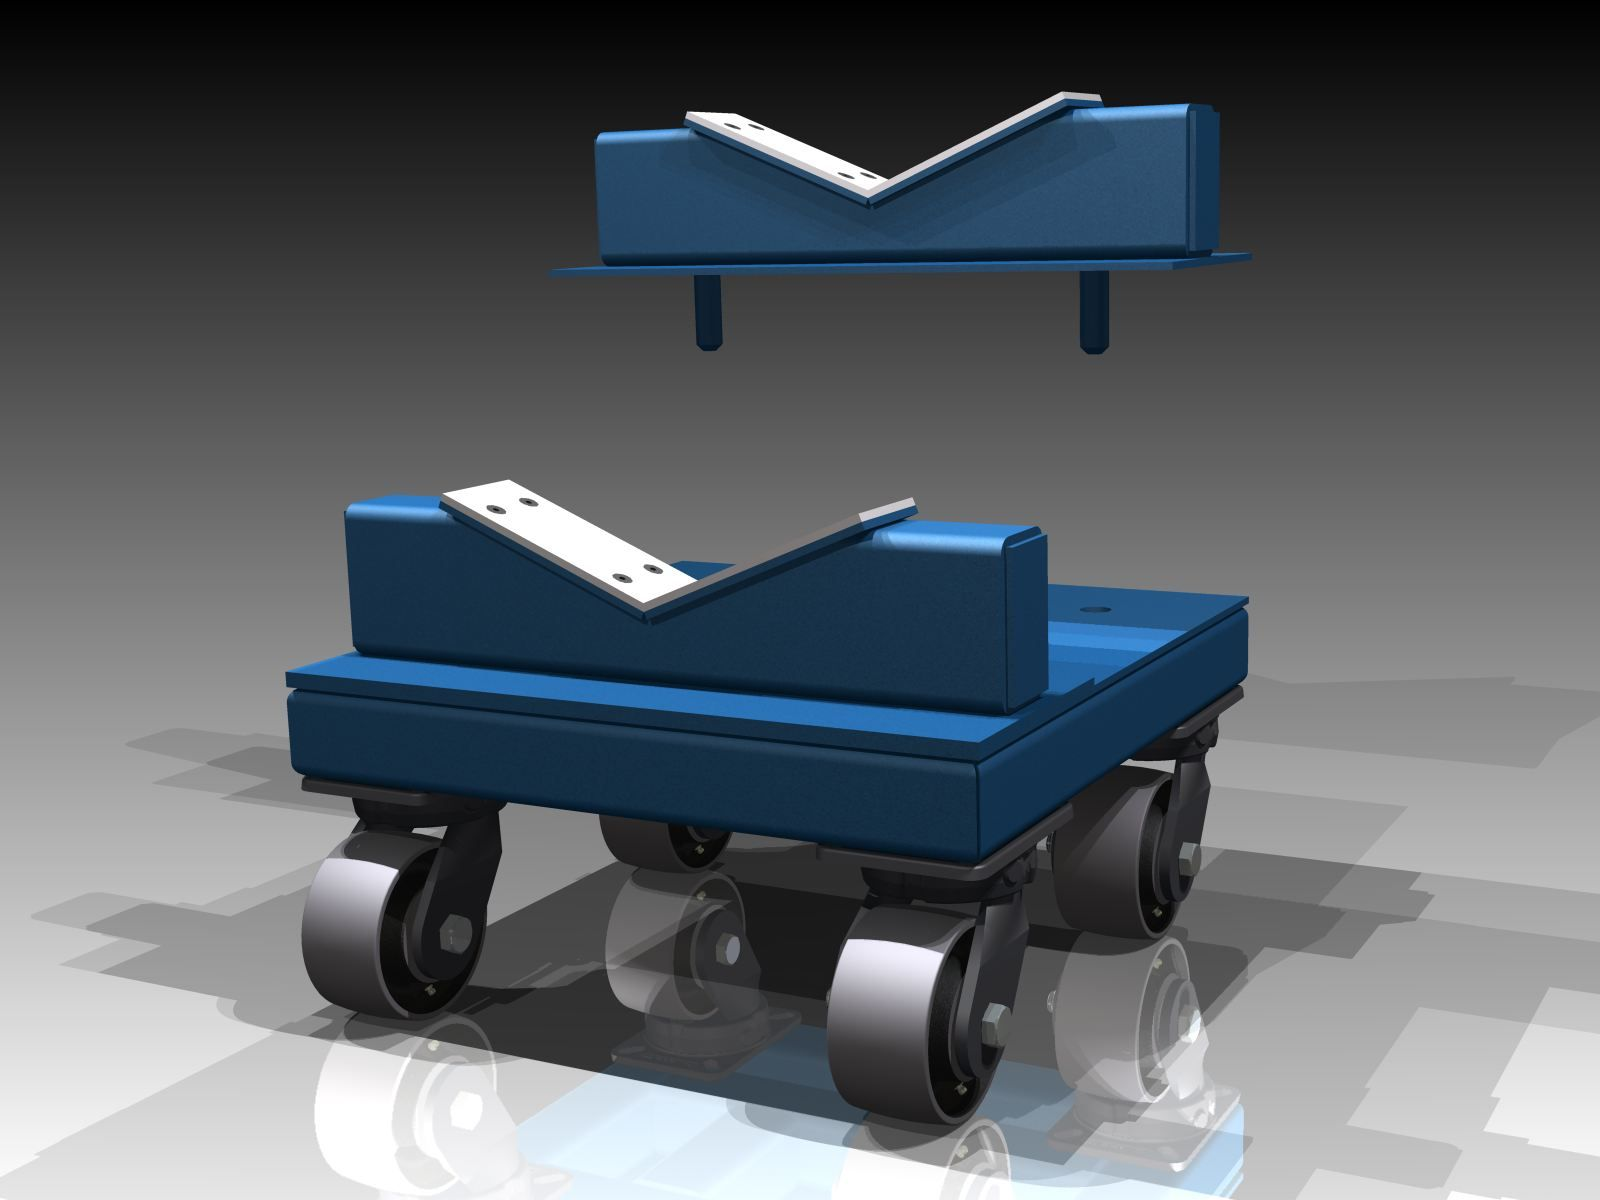 74 best MOBILE BASES Wheels Casters Dollies Carts images on